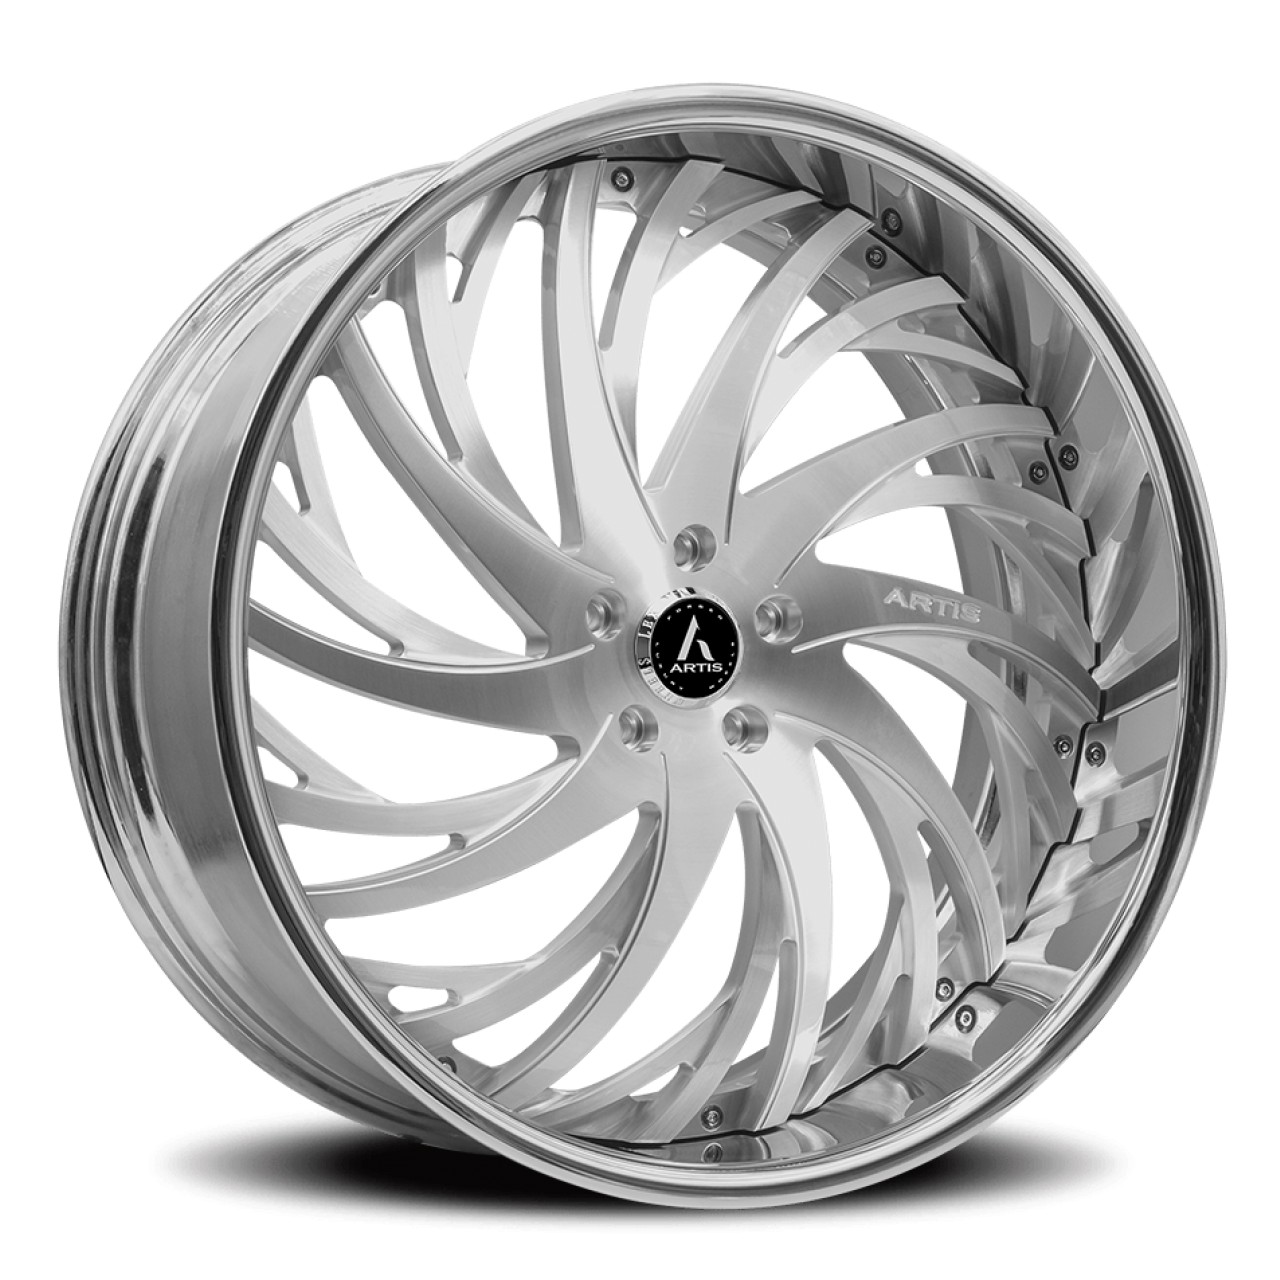 Artis Forged Decatur wheel with Brushed finish